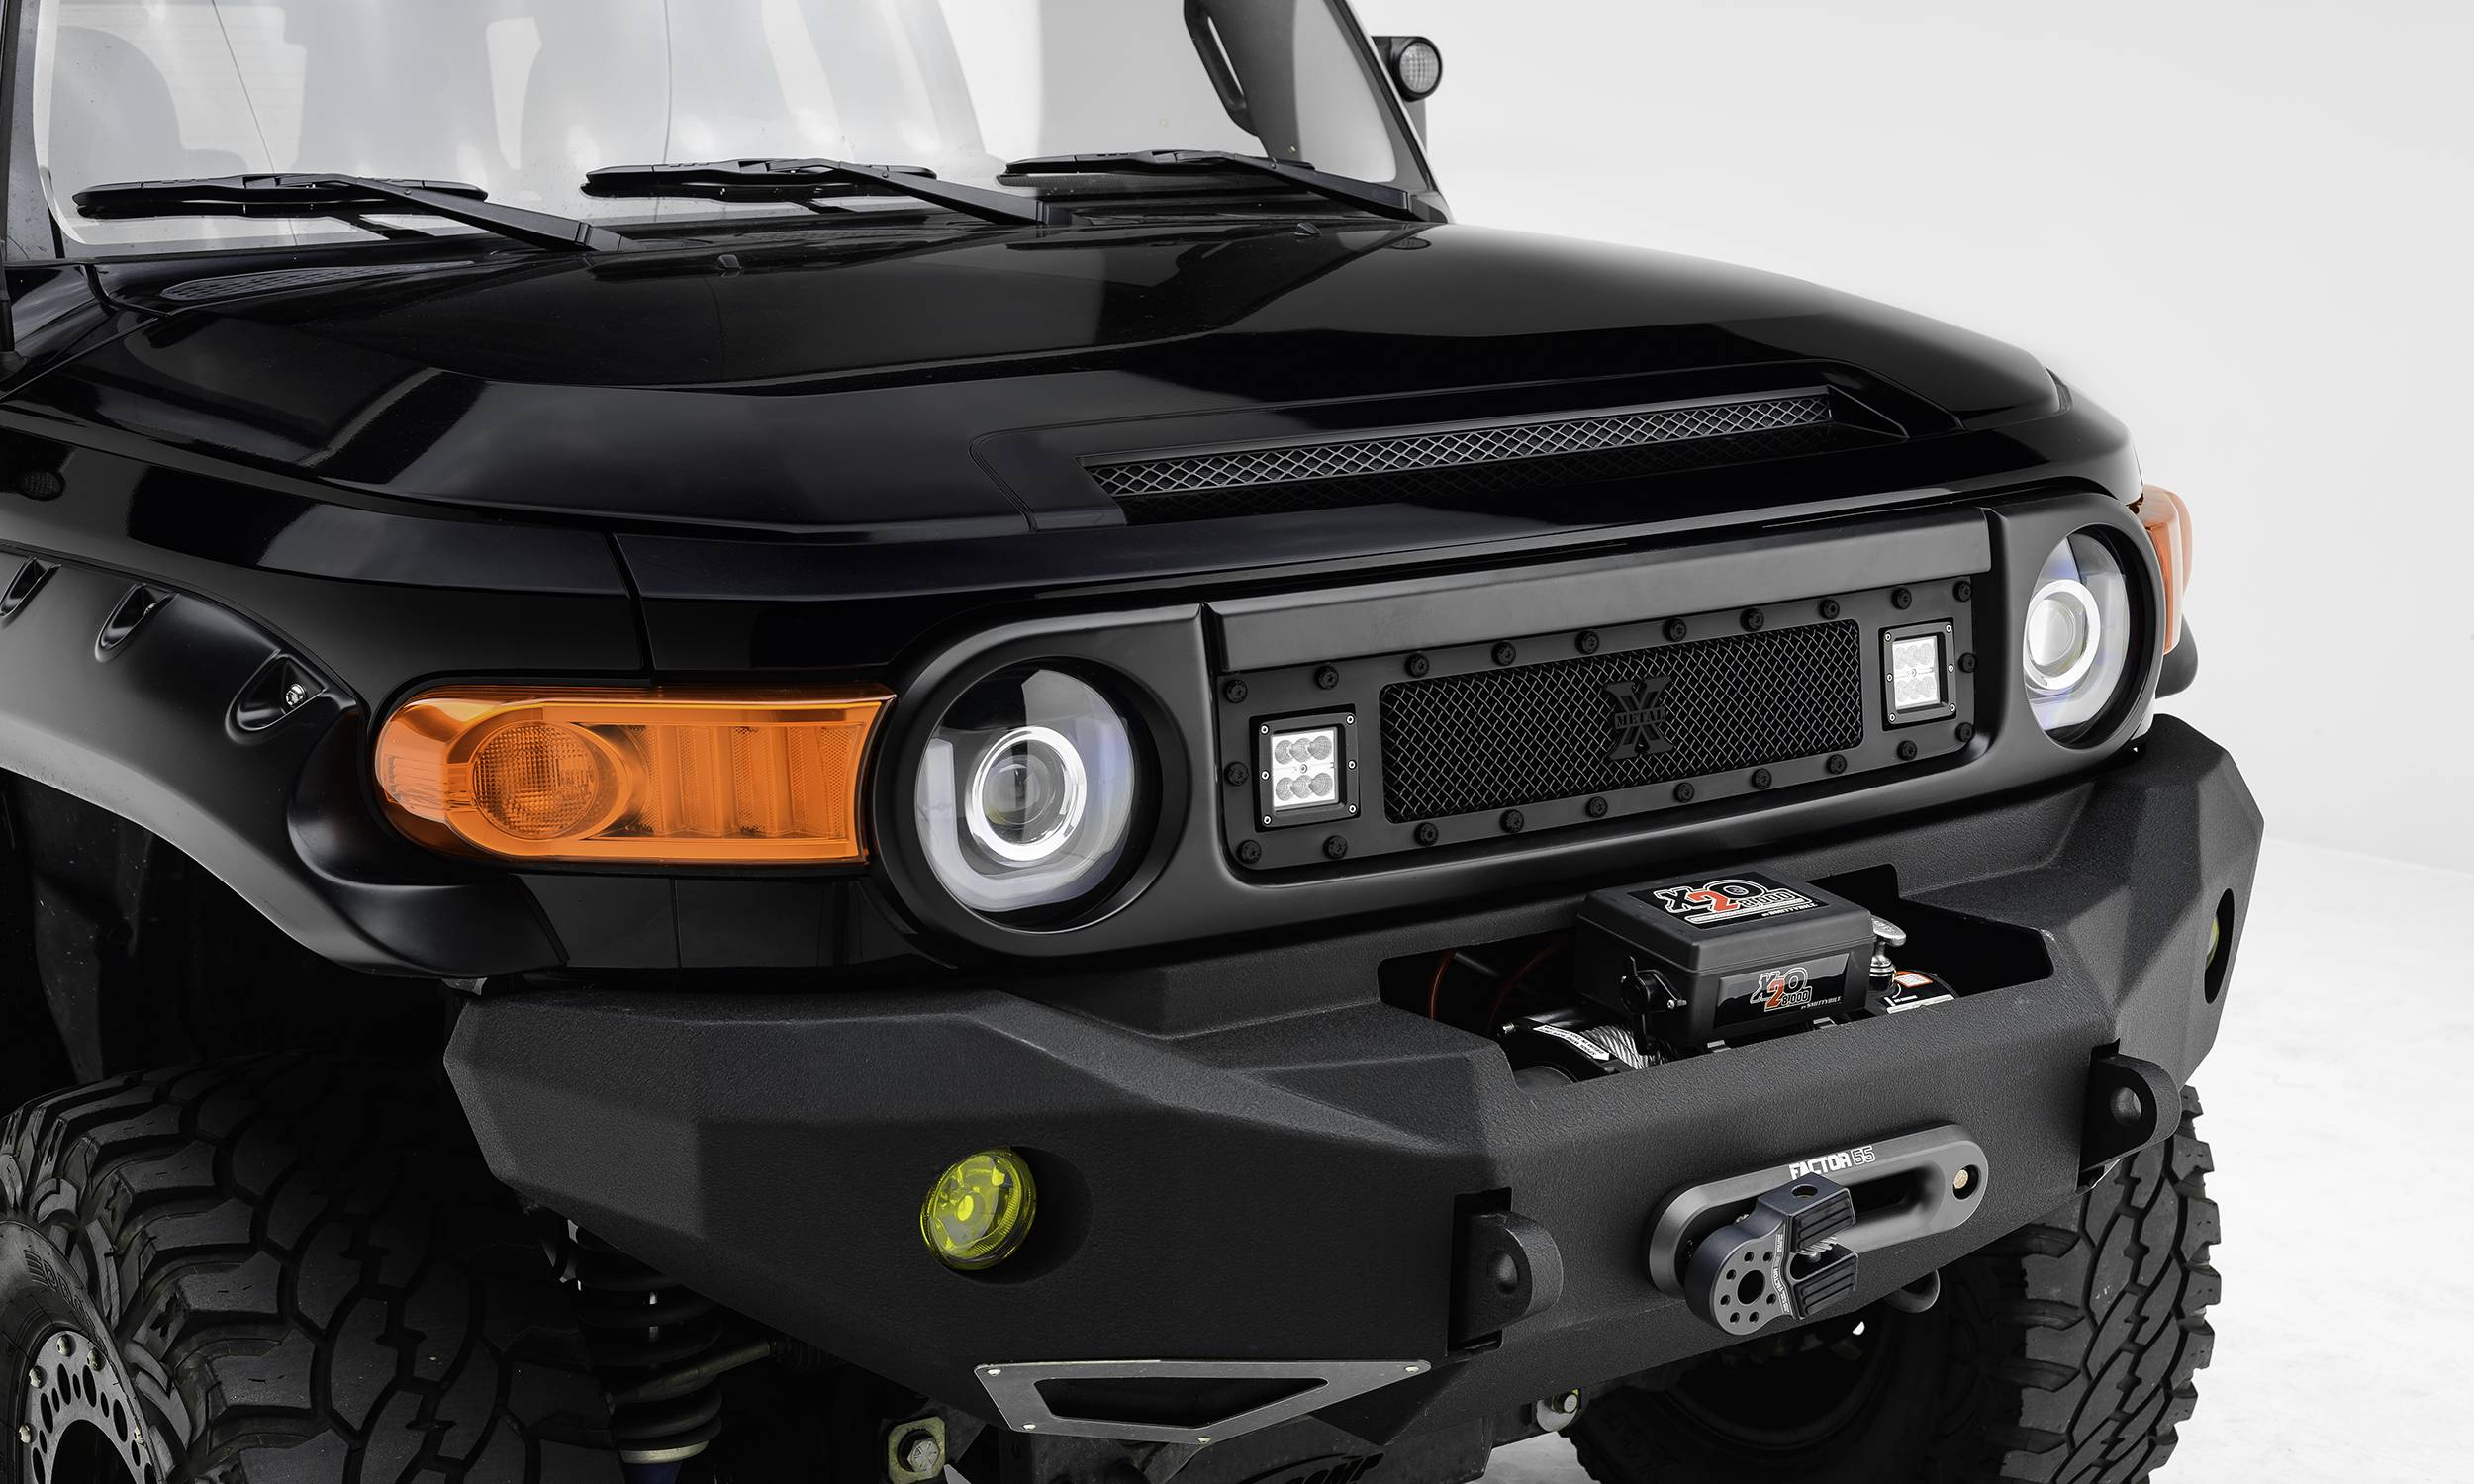 """T-REX GRILLES - 2007-2014 Toyota FJ Cruiser Stealth Torch Grille, Black, 1 Pc, Insert, Black Studs with (2) 3"""" LED Cube Lights - PN #6319321-BR"""